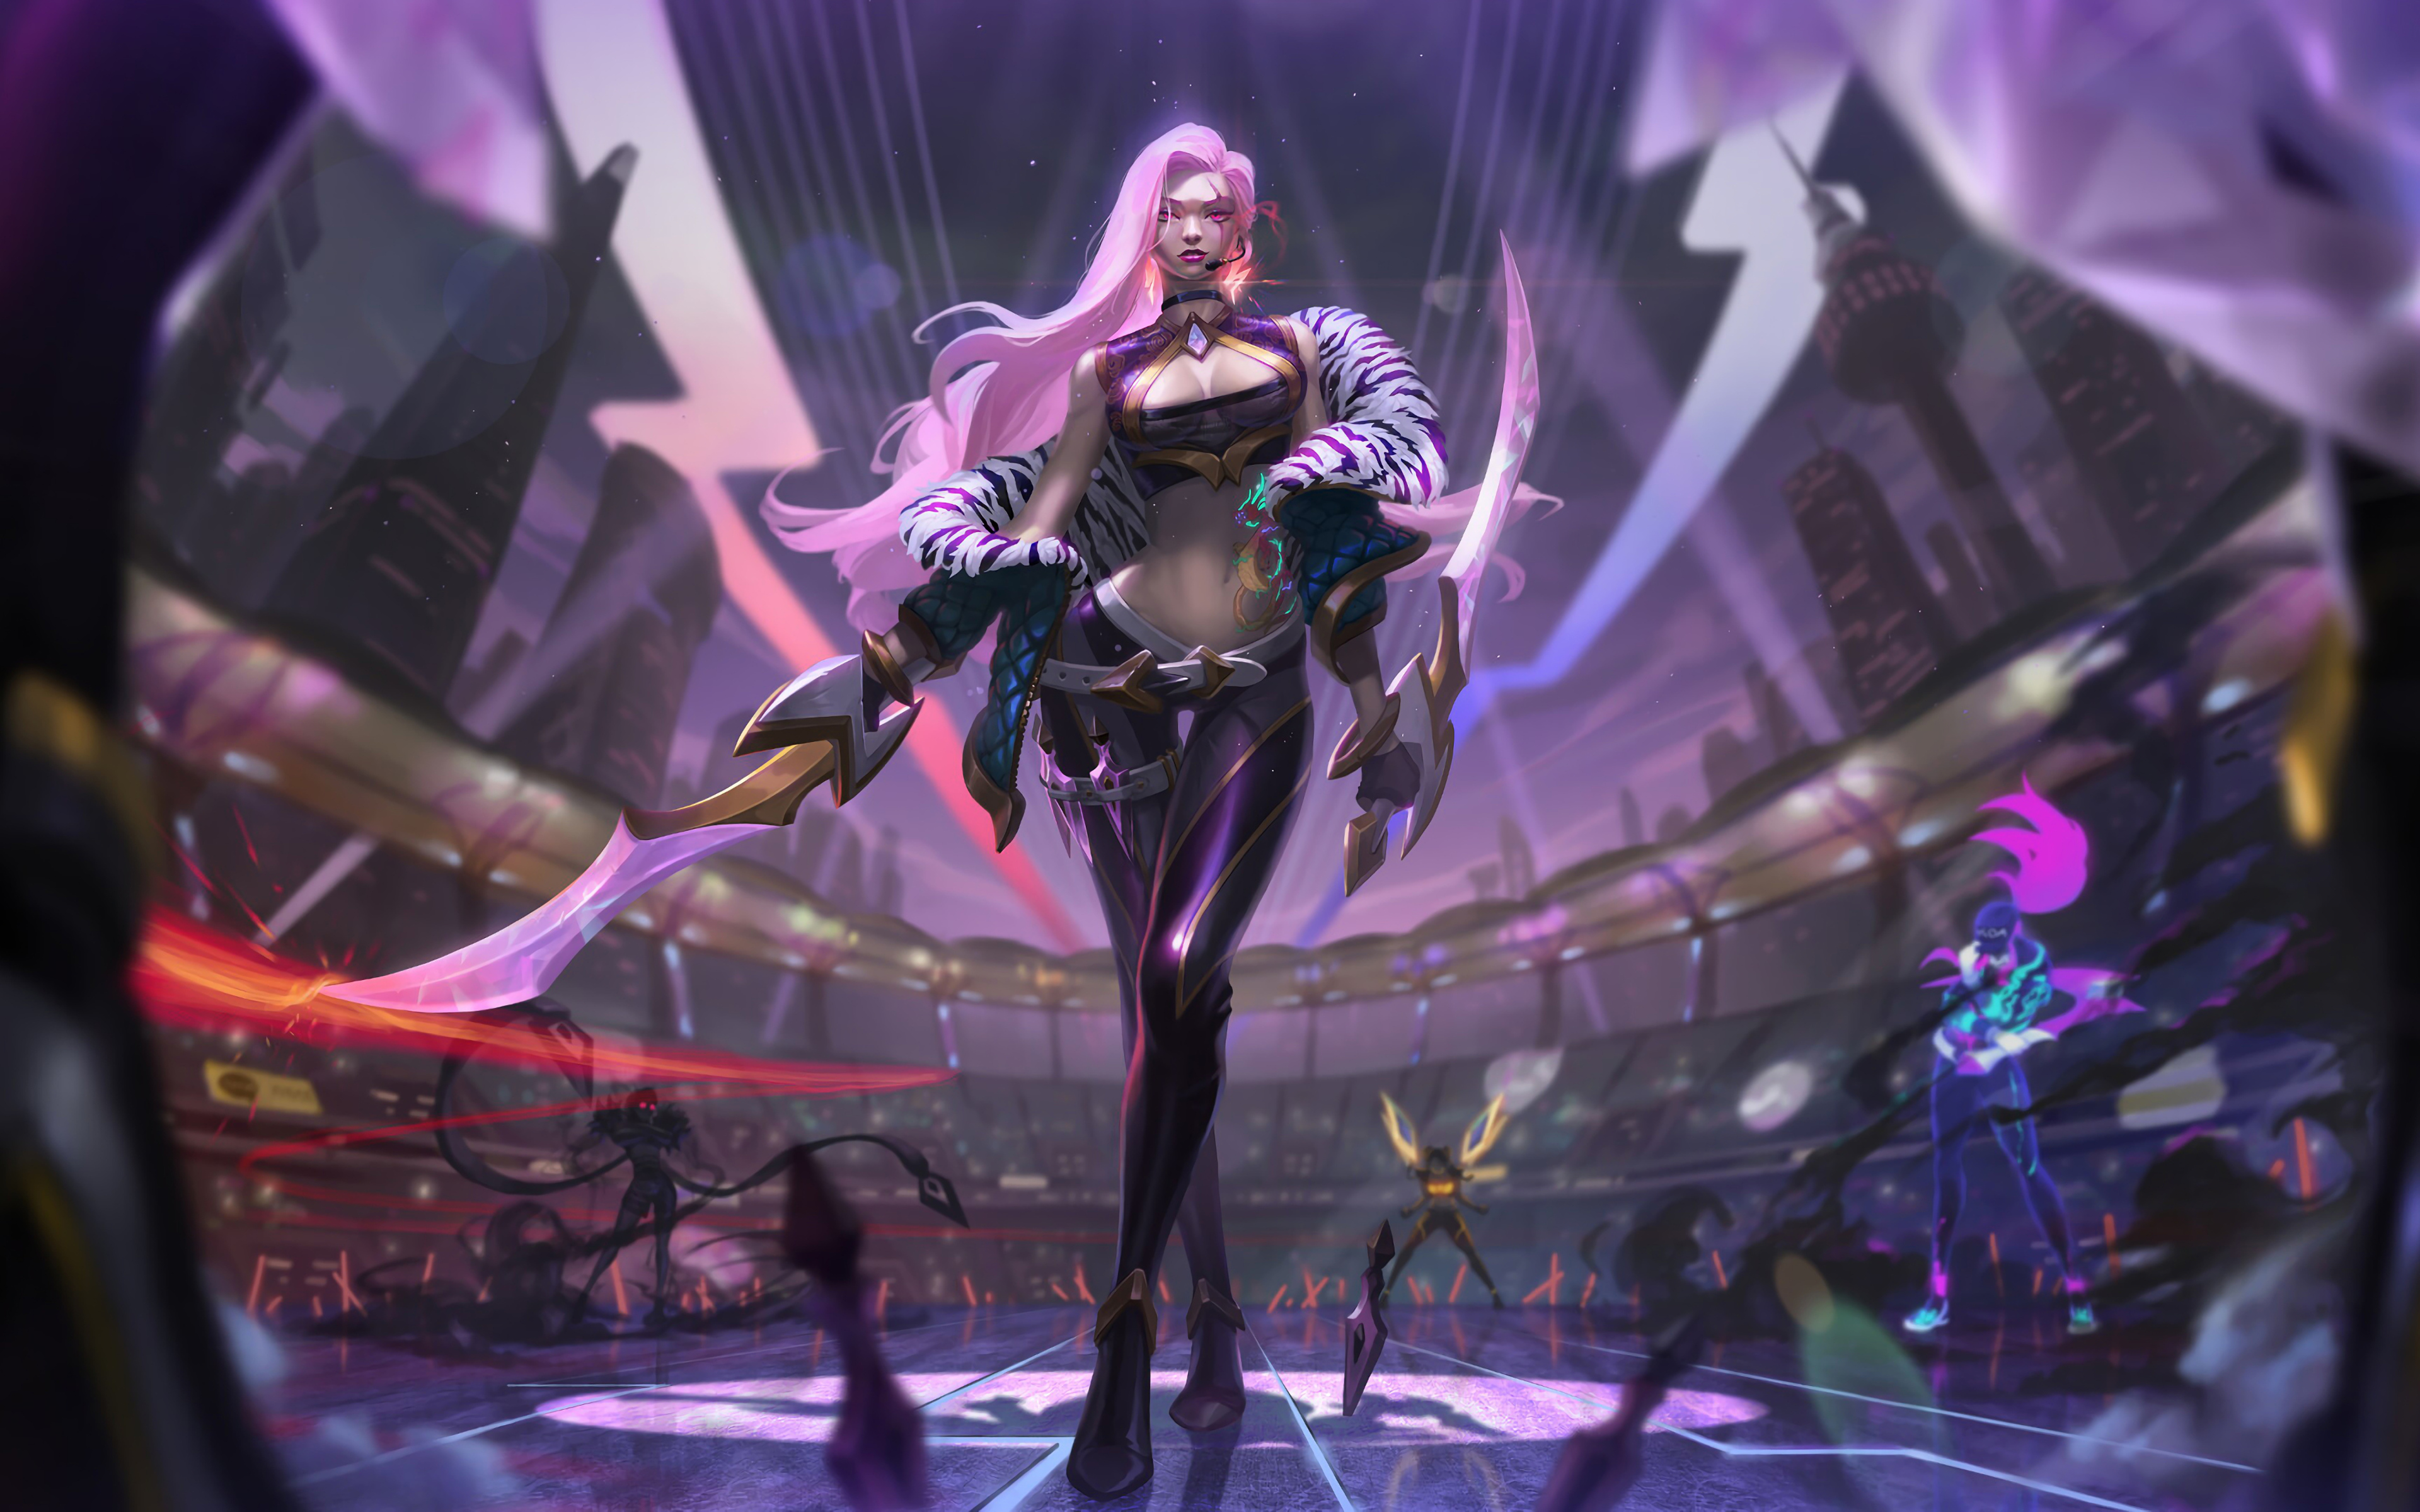 kda-katarina-league-of-legends-4k-j4.jpg